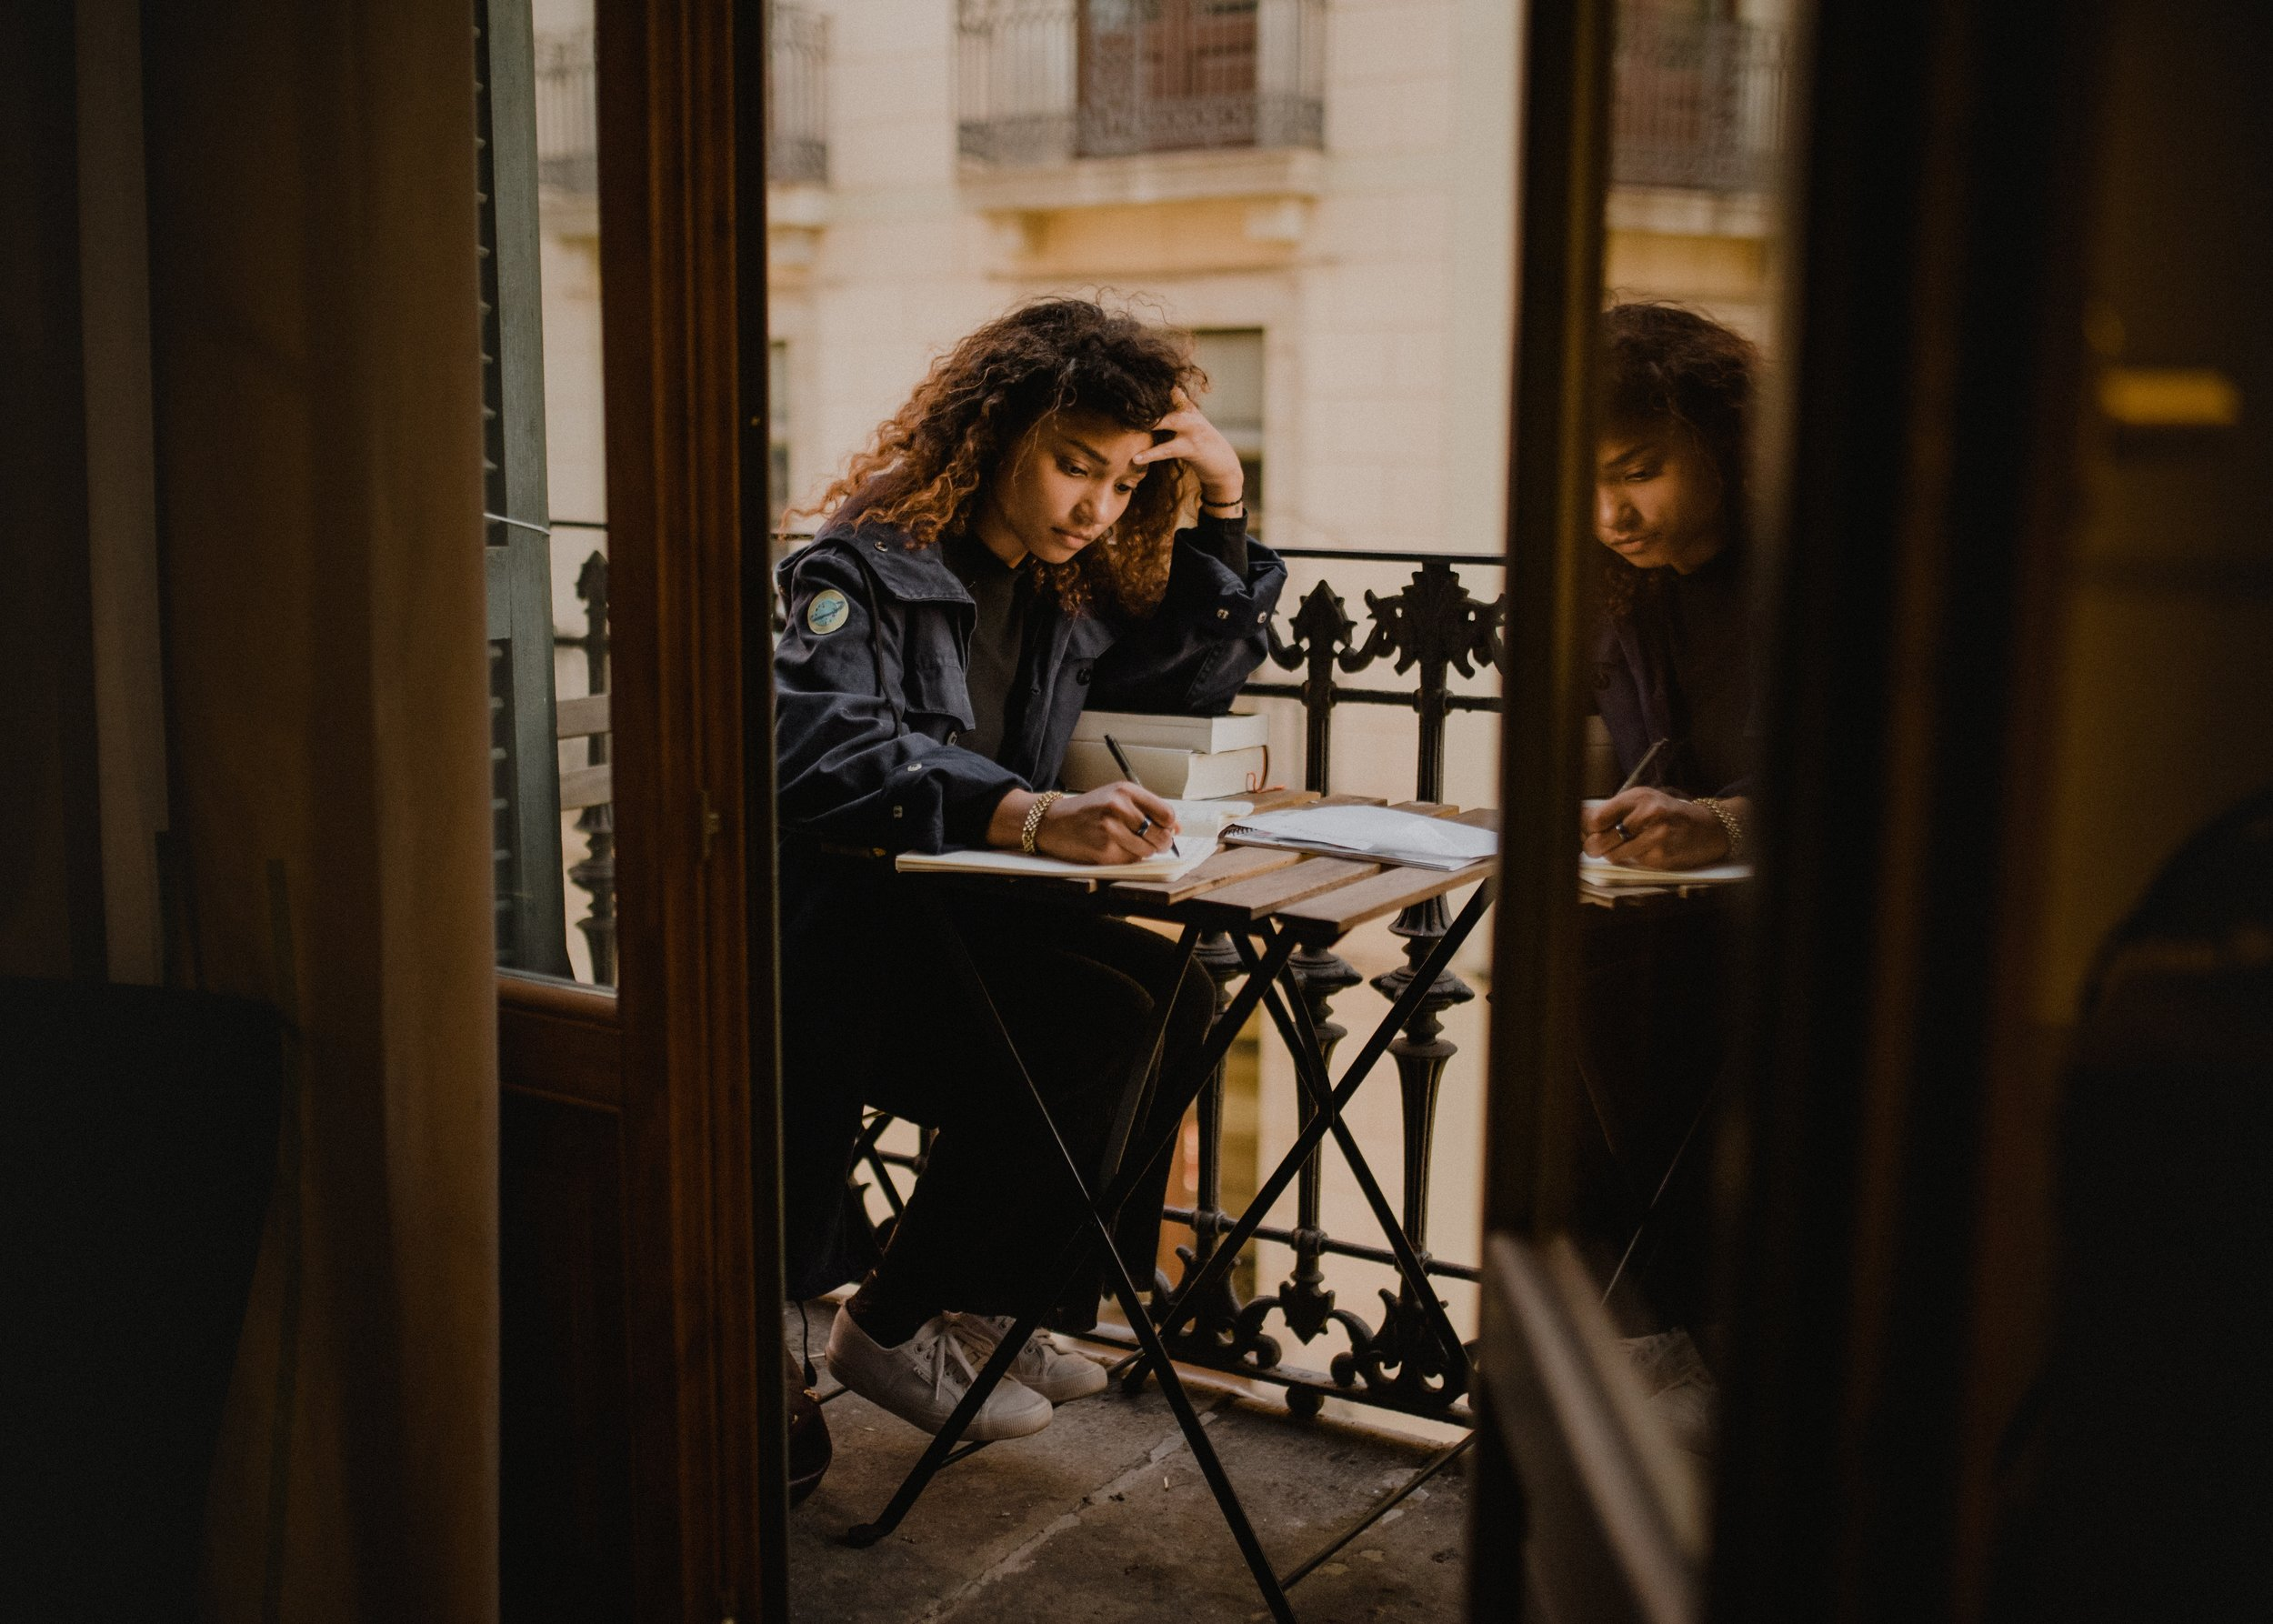 Studying Foreign Languages | Wrapping Your Tongue around Any Language in Six Months? The Lonsdale Method  | Observations from a Broad | copyright 2019 OFAB  (photo: Kinga Cichewicz)